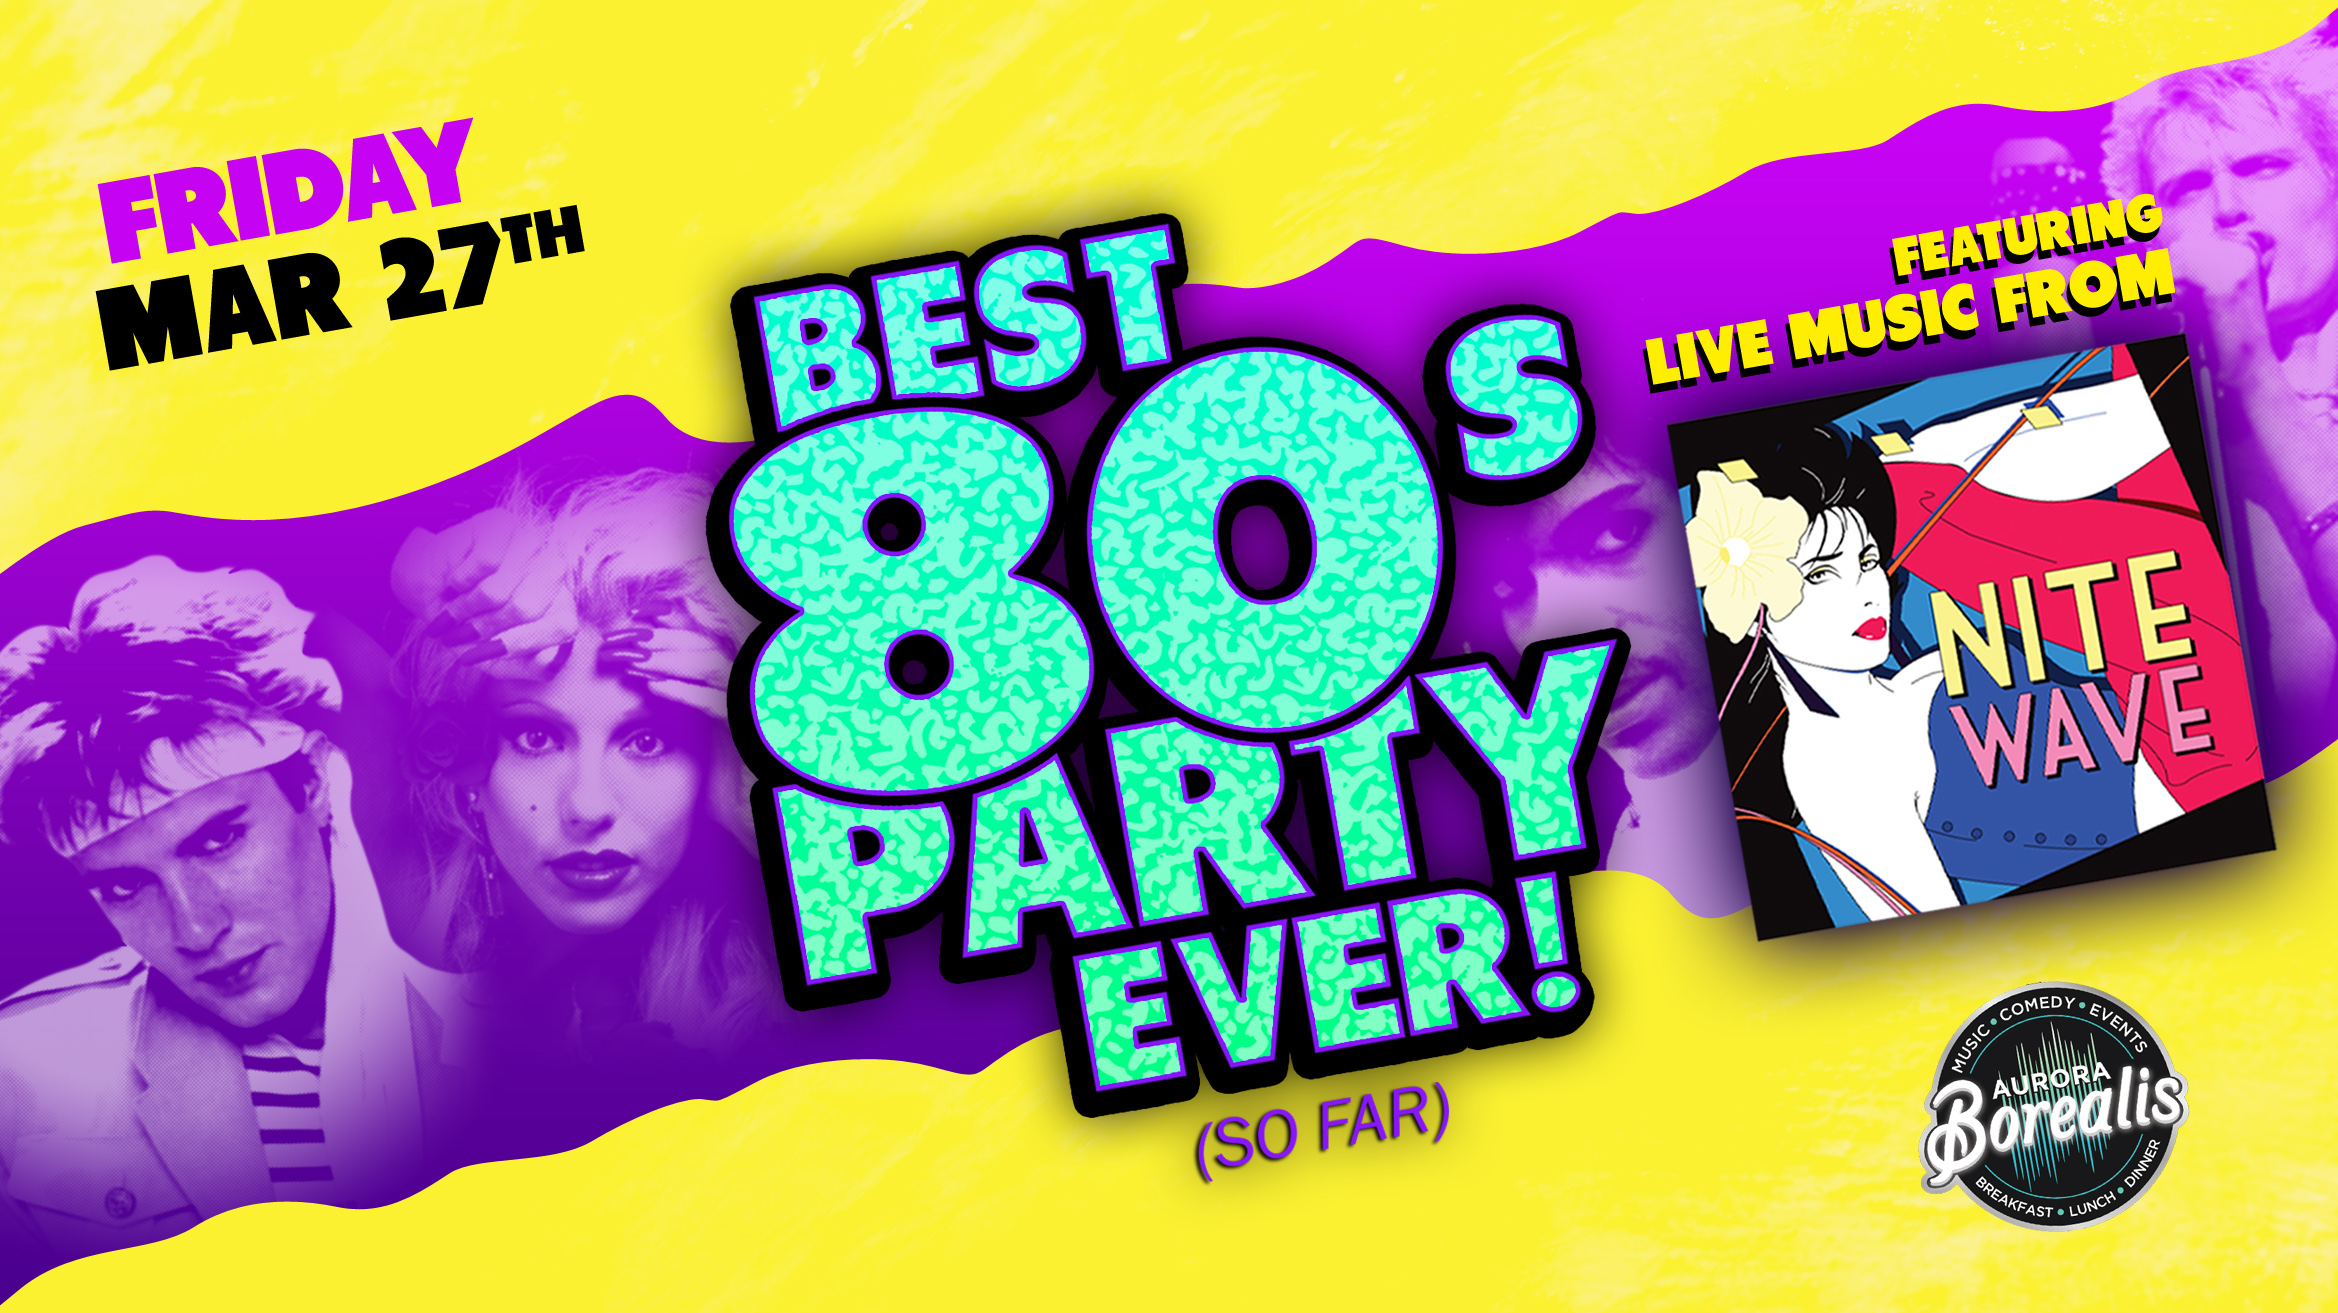 The Best 80's Party Ever! (so far) with Nite Wave